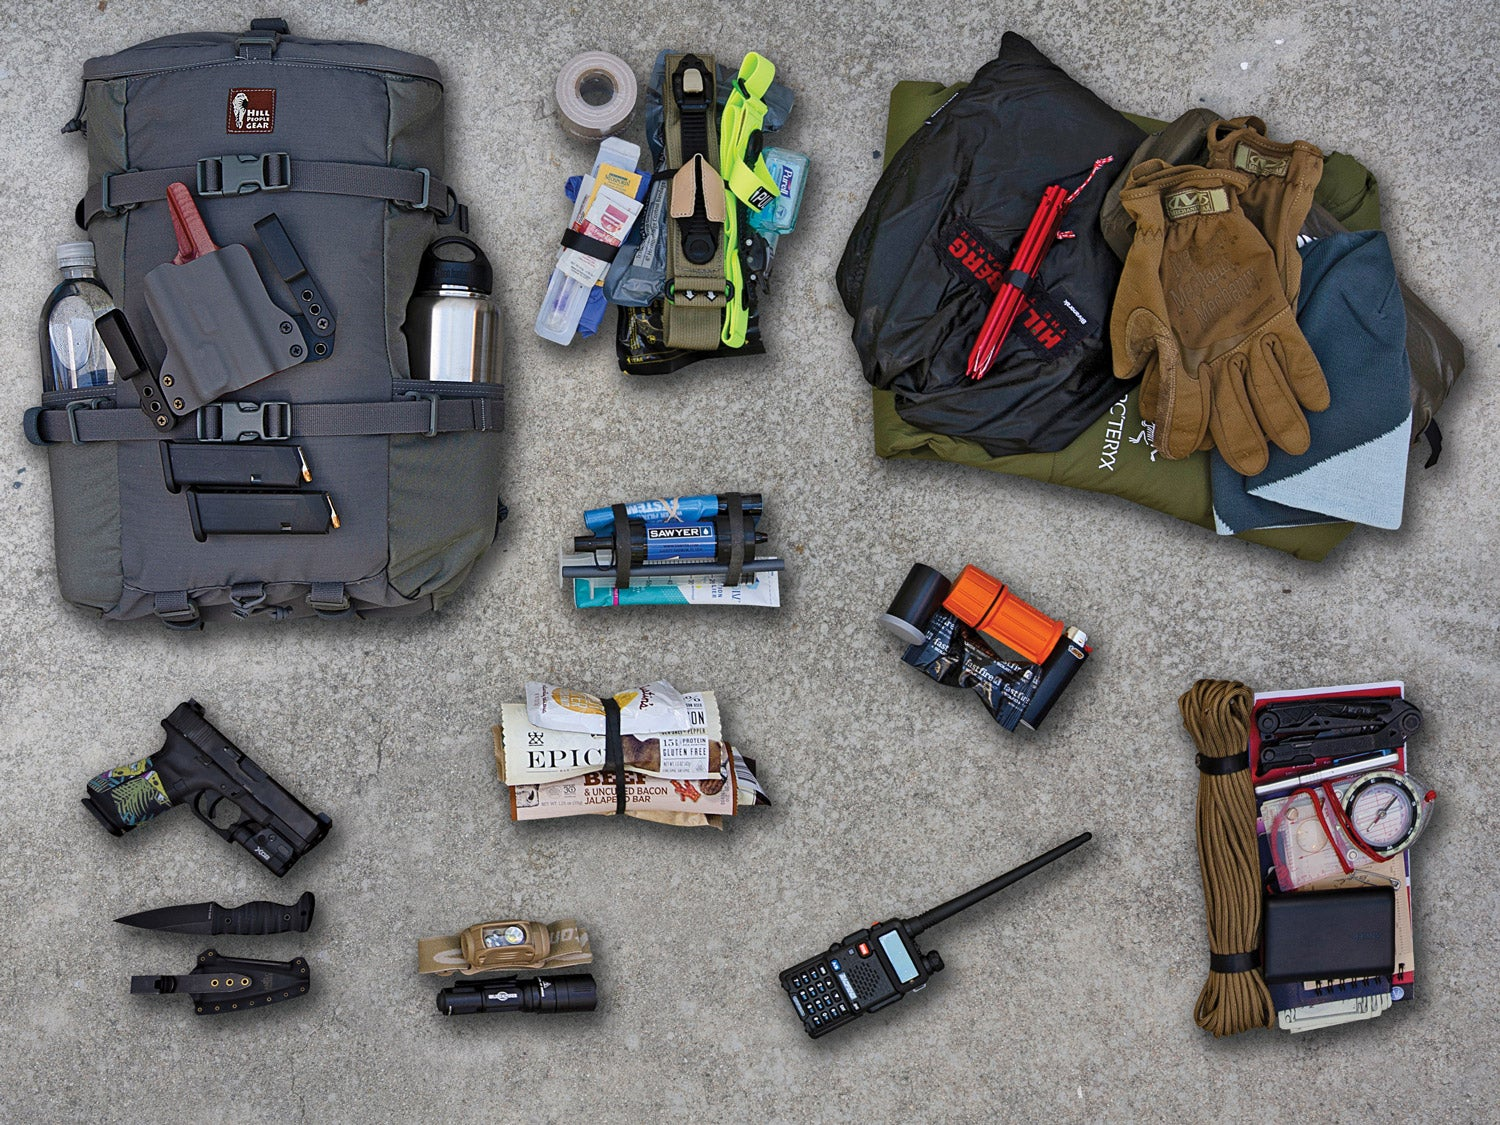 A collage of supplies and gear arranged on a concrete background.